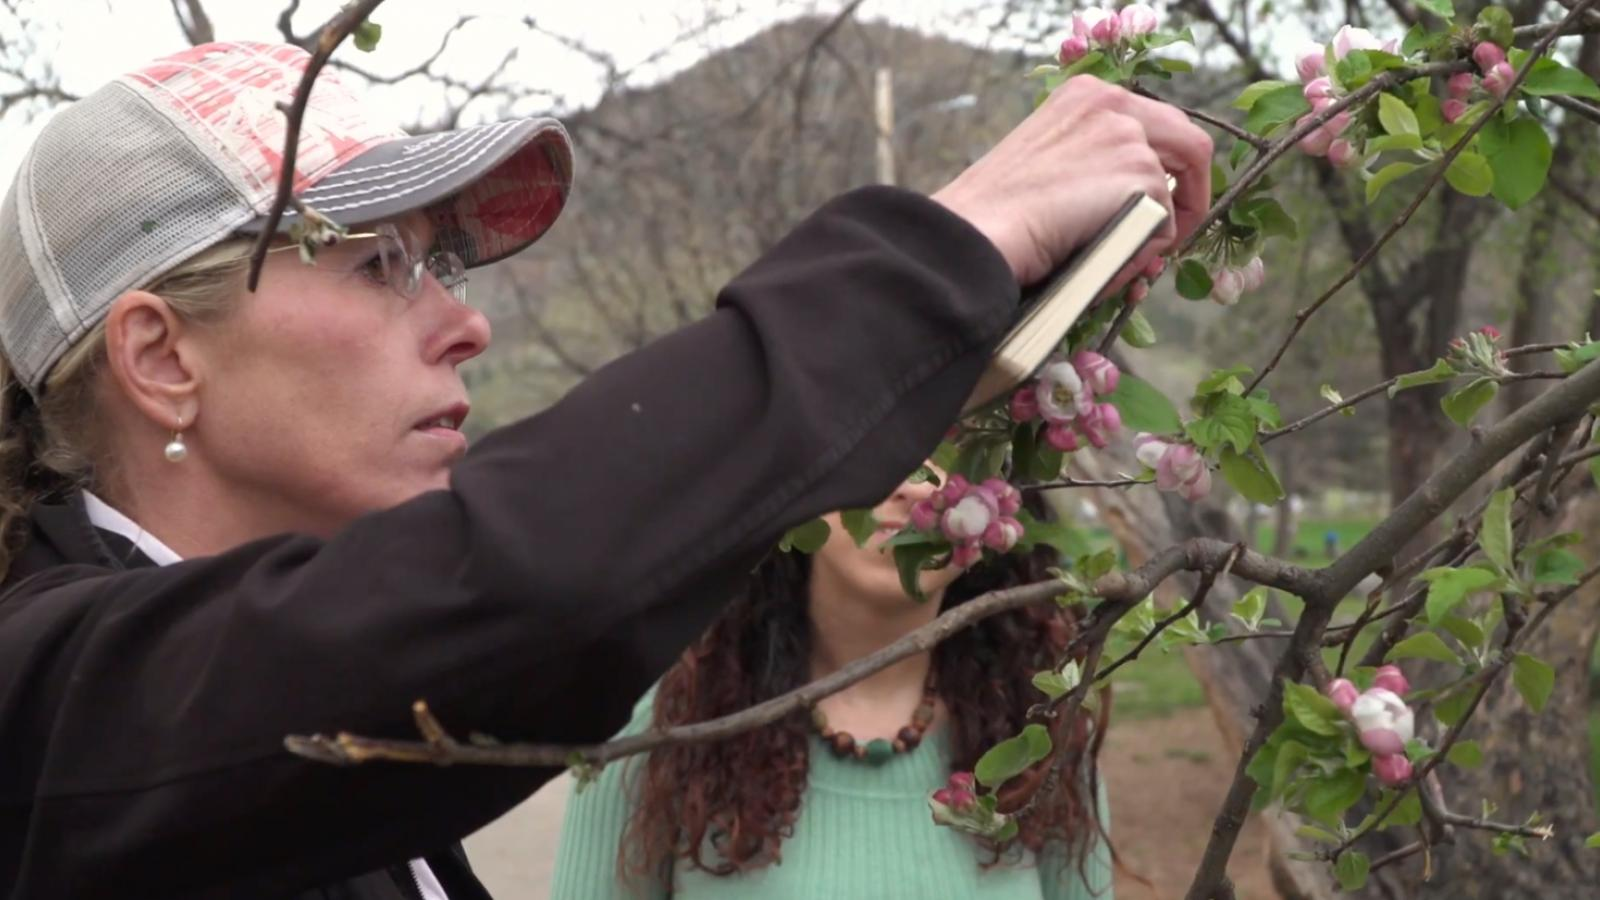 sudding examining an apple tree